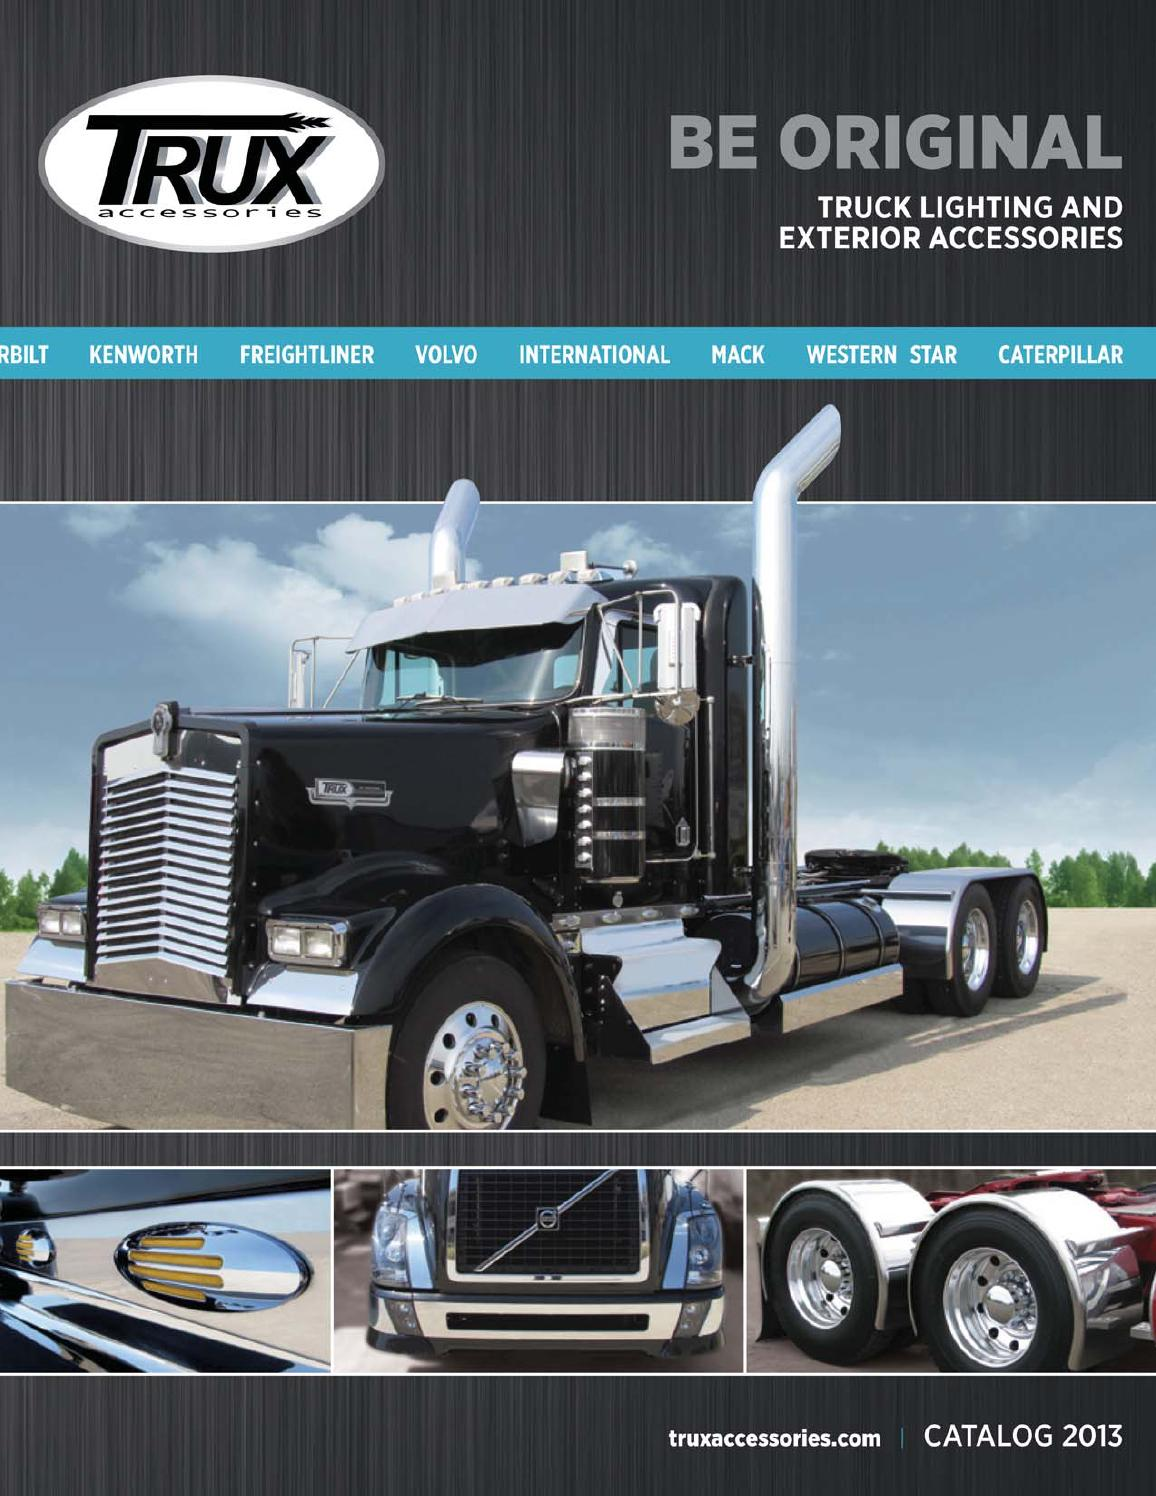 Trux Accessories 2013 Catalog by Trux Accessories - issuu